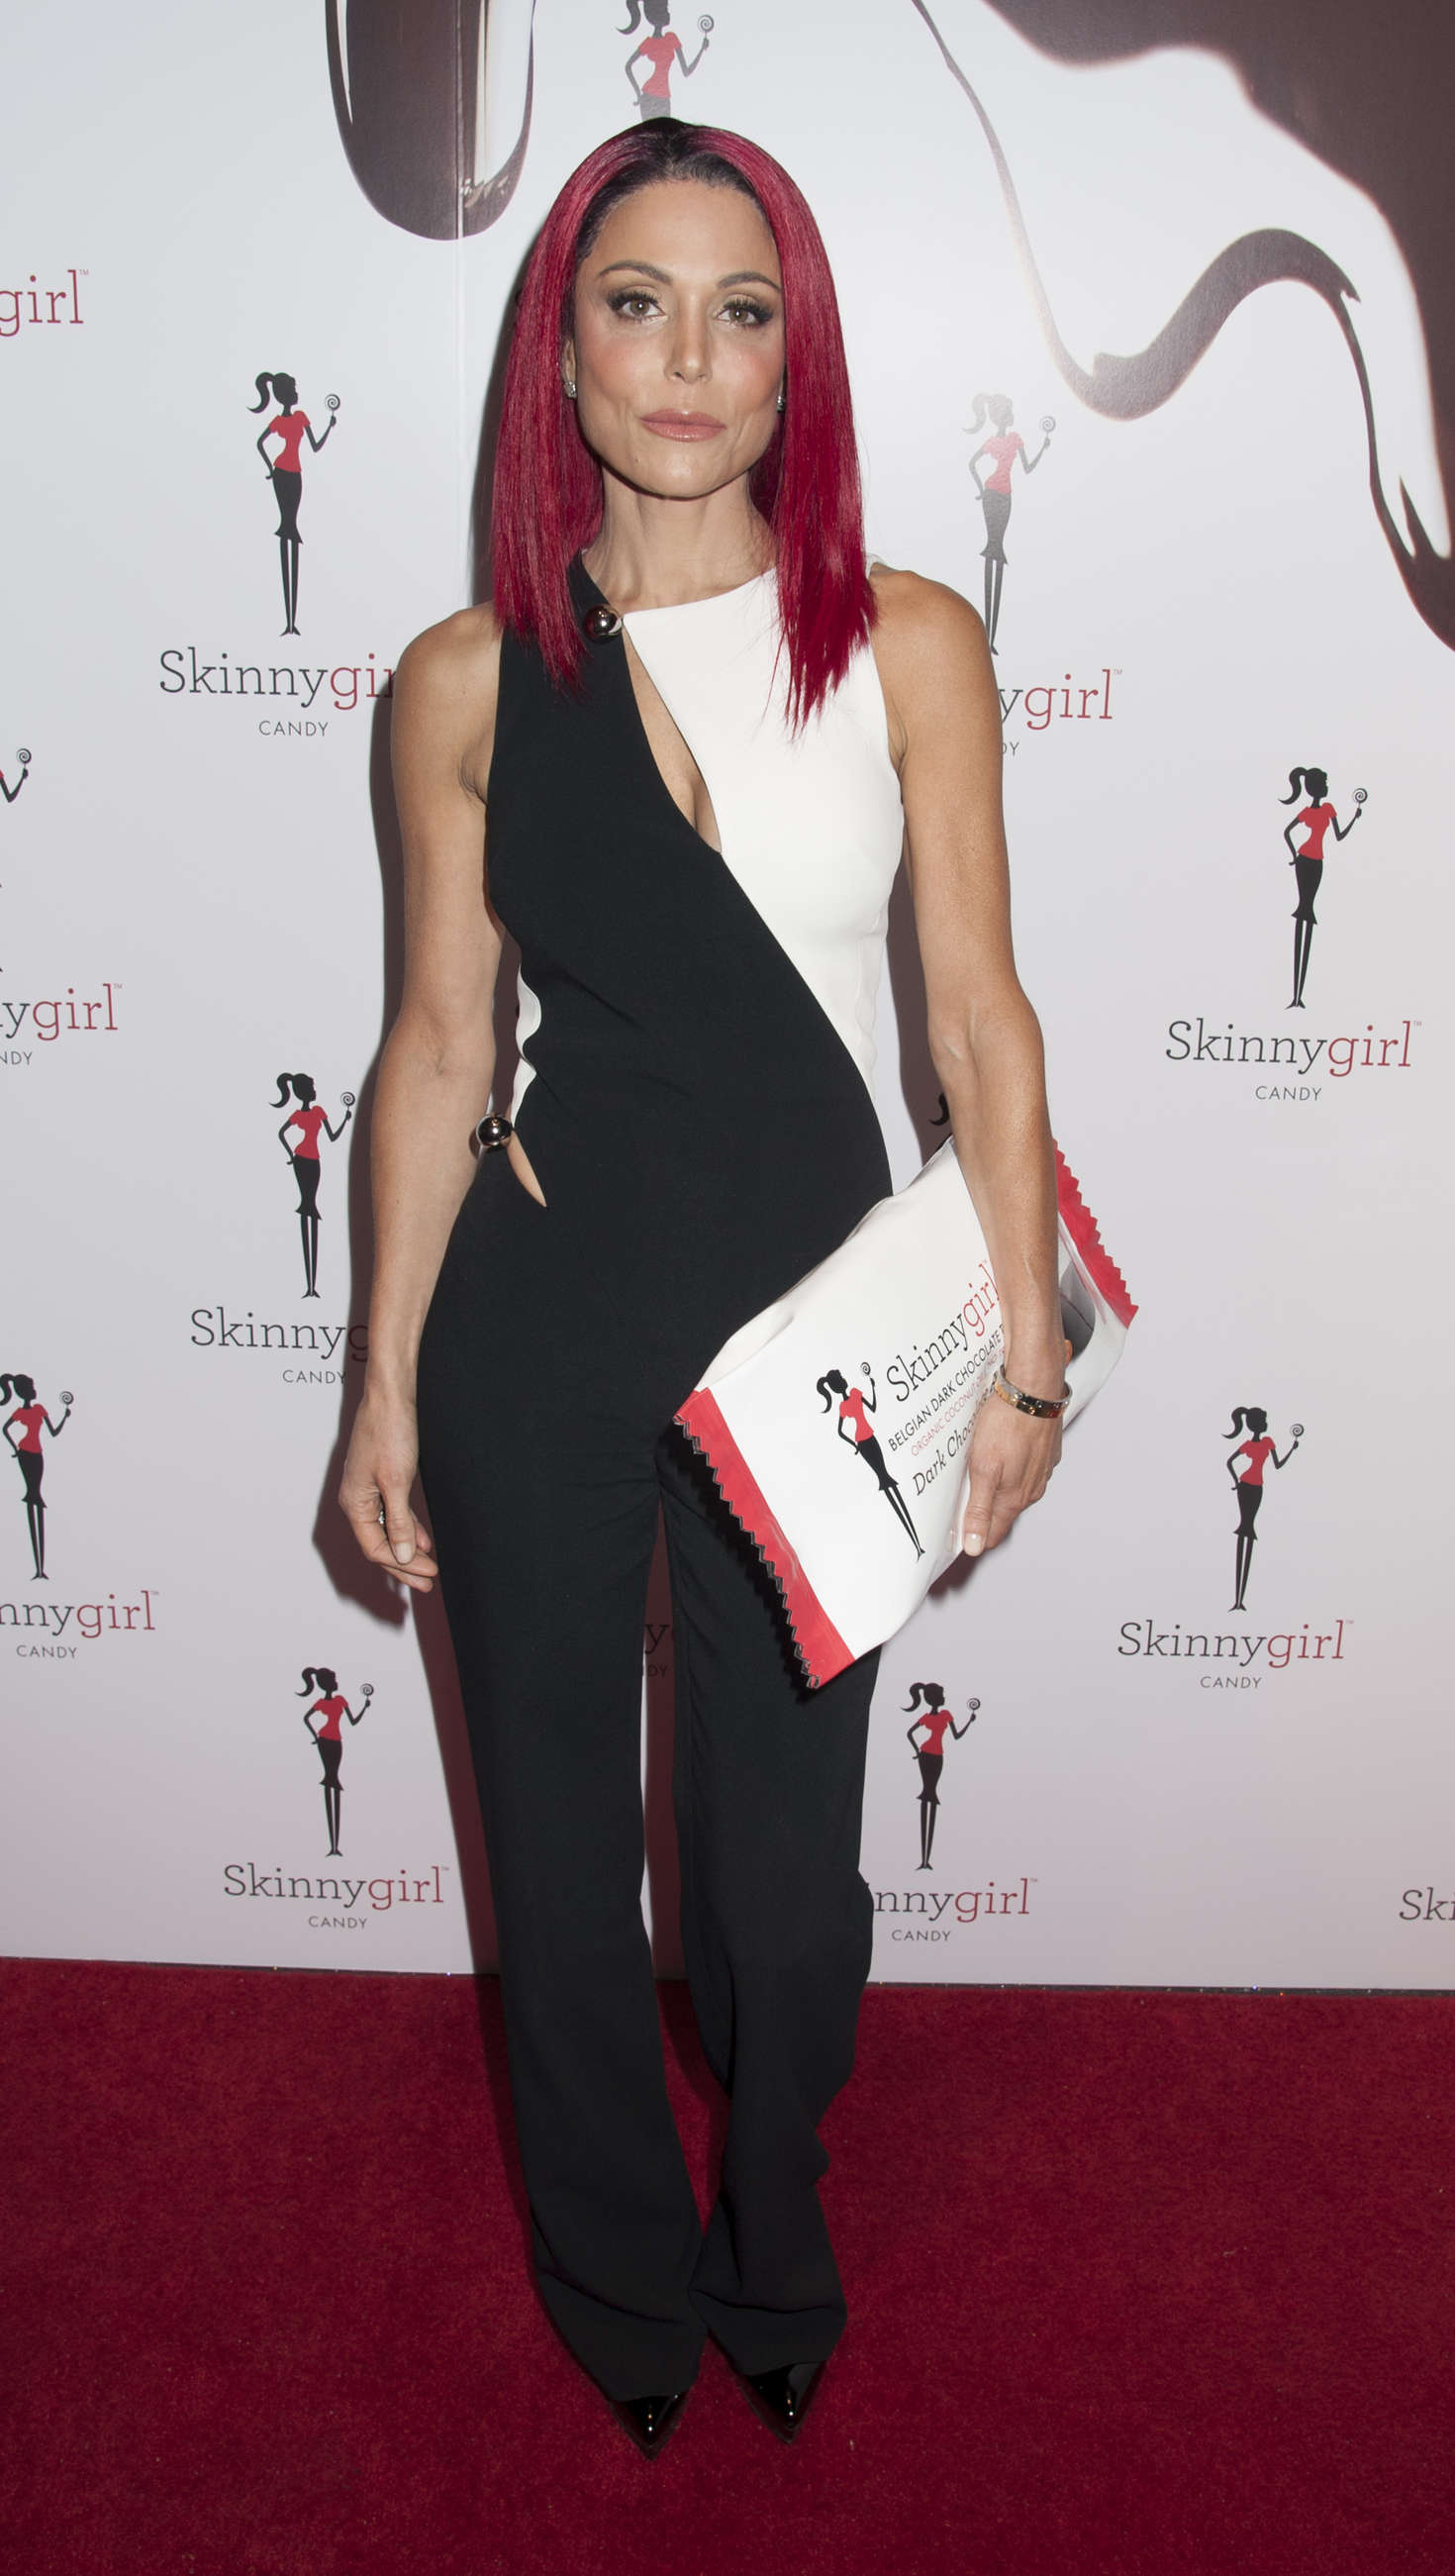 Bethenny Frankel The Skinny Girl Candy Launch in New York